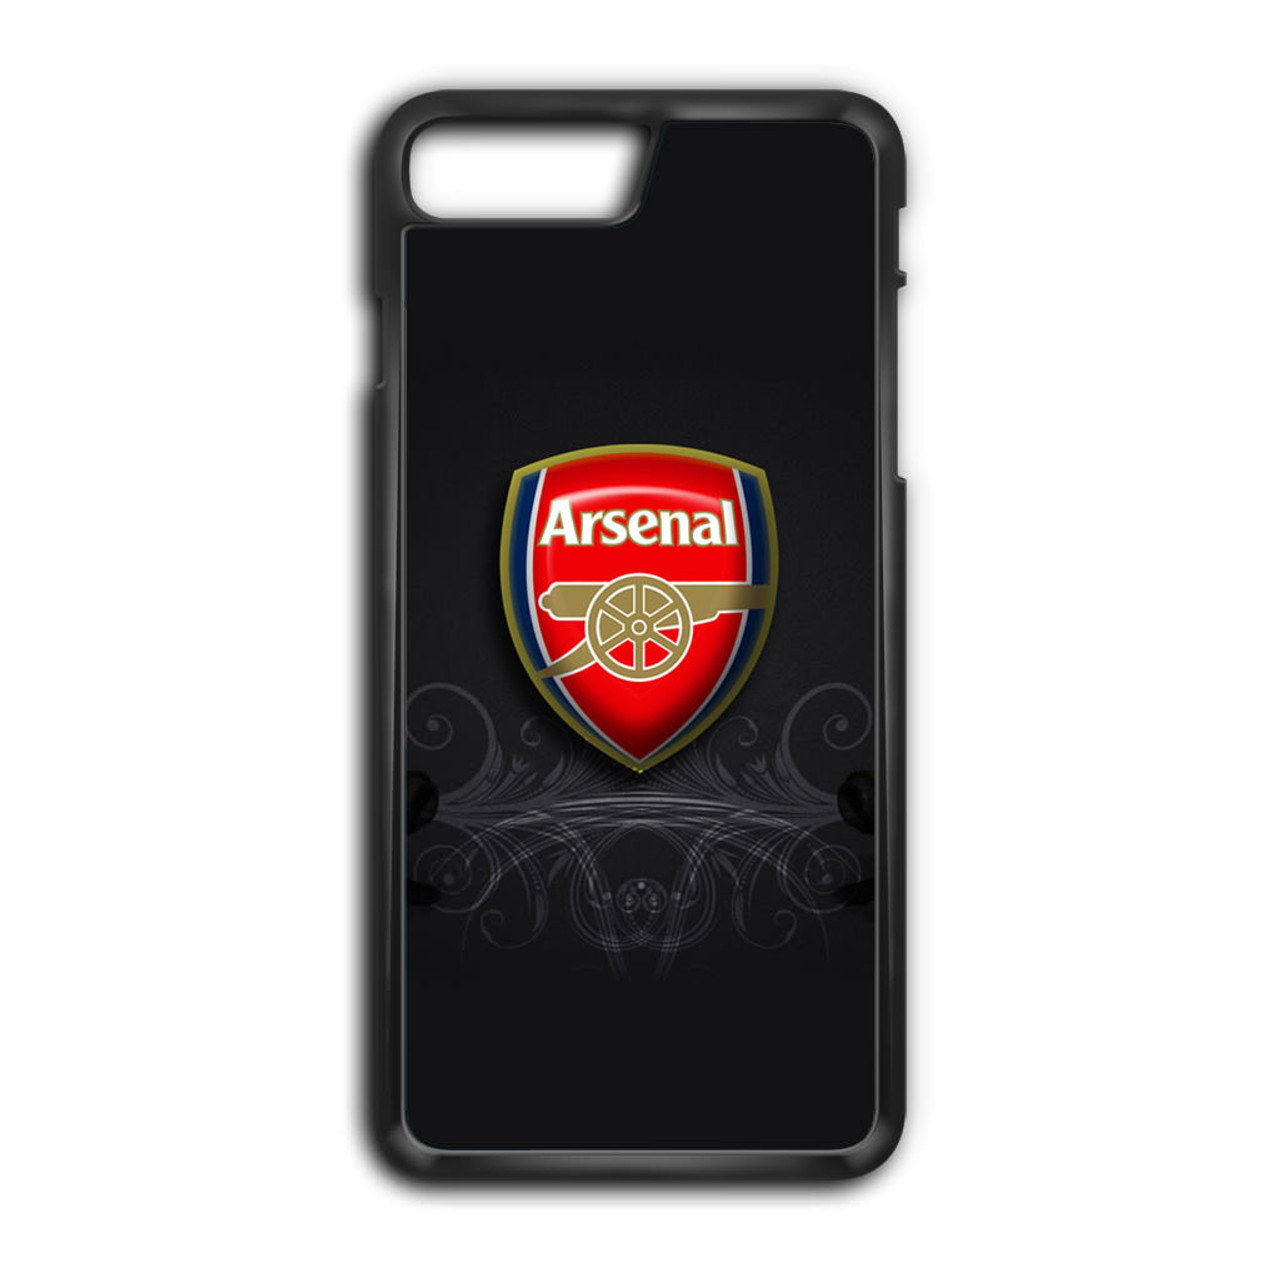 new arrival 58825 6d223 Arsenal iPhone 8 Plus Case